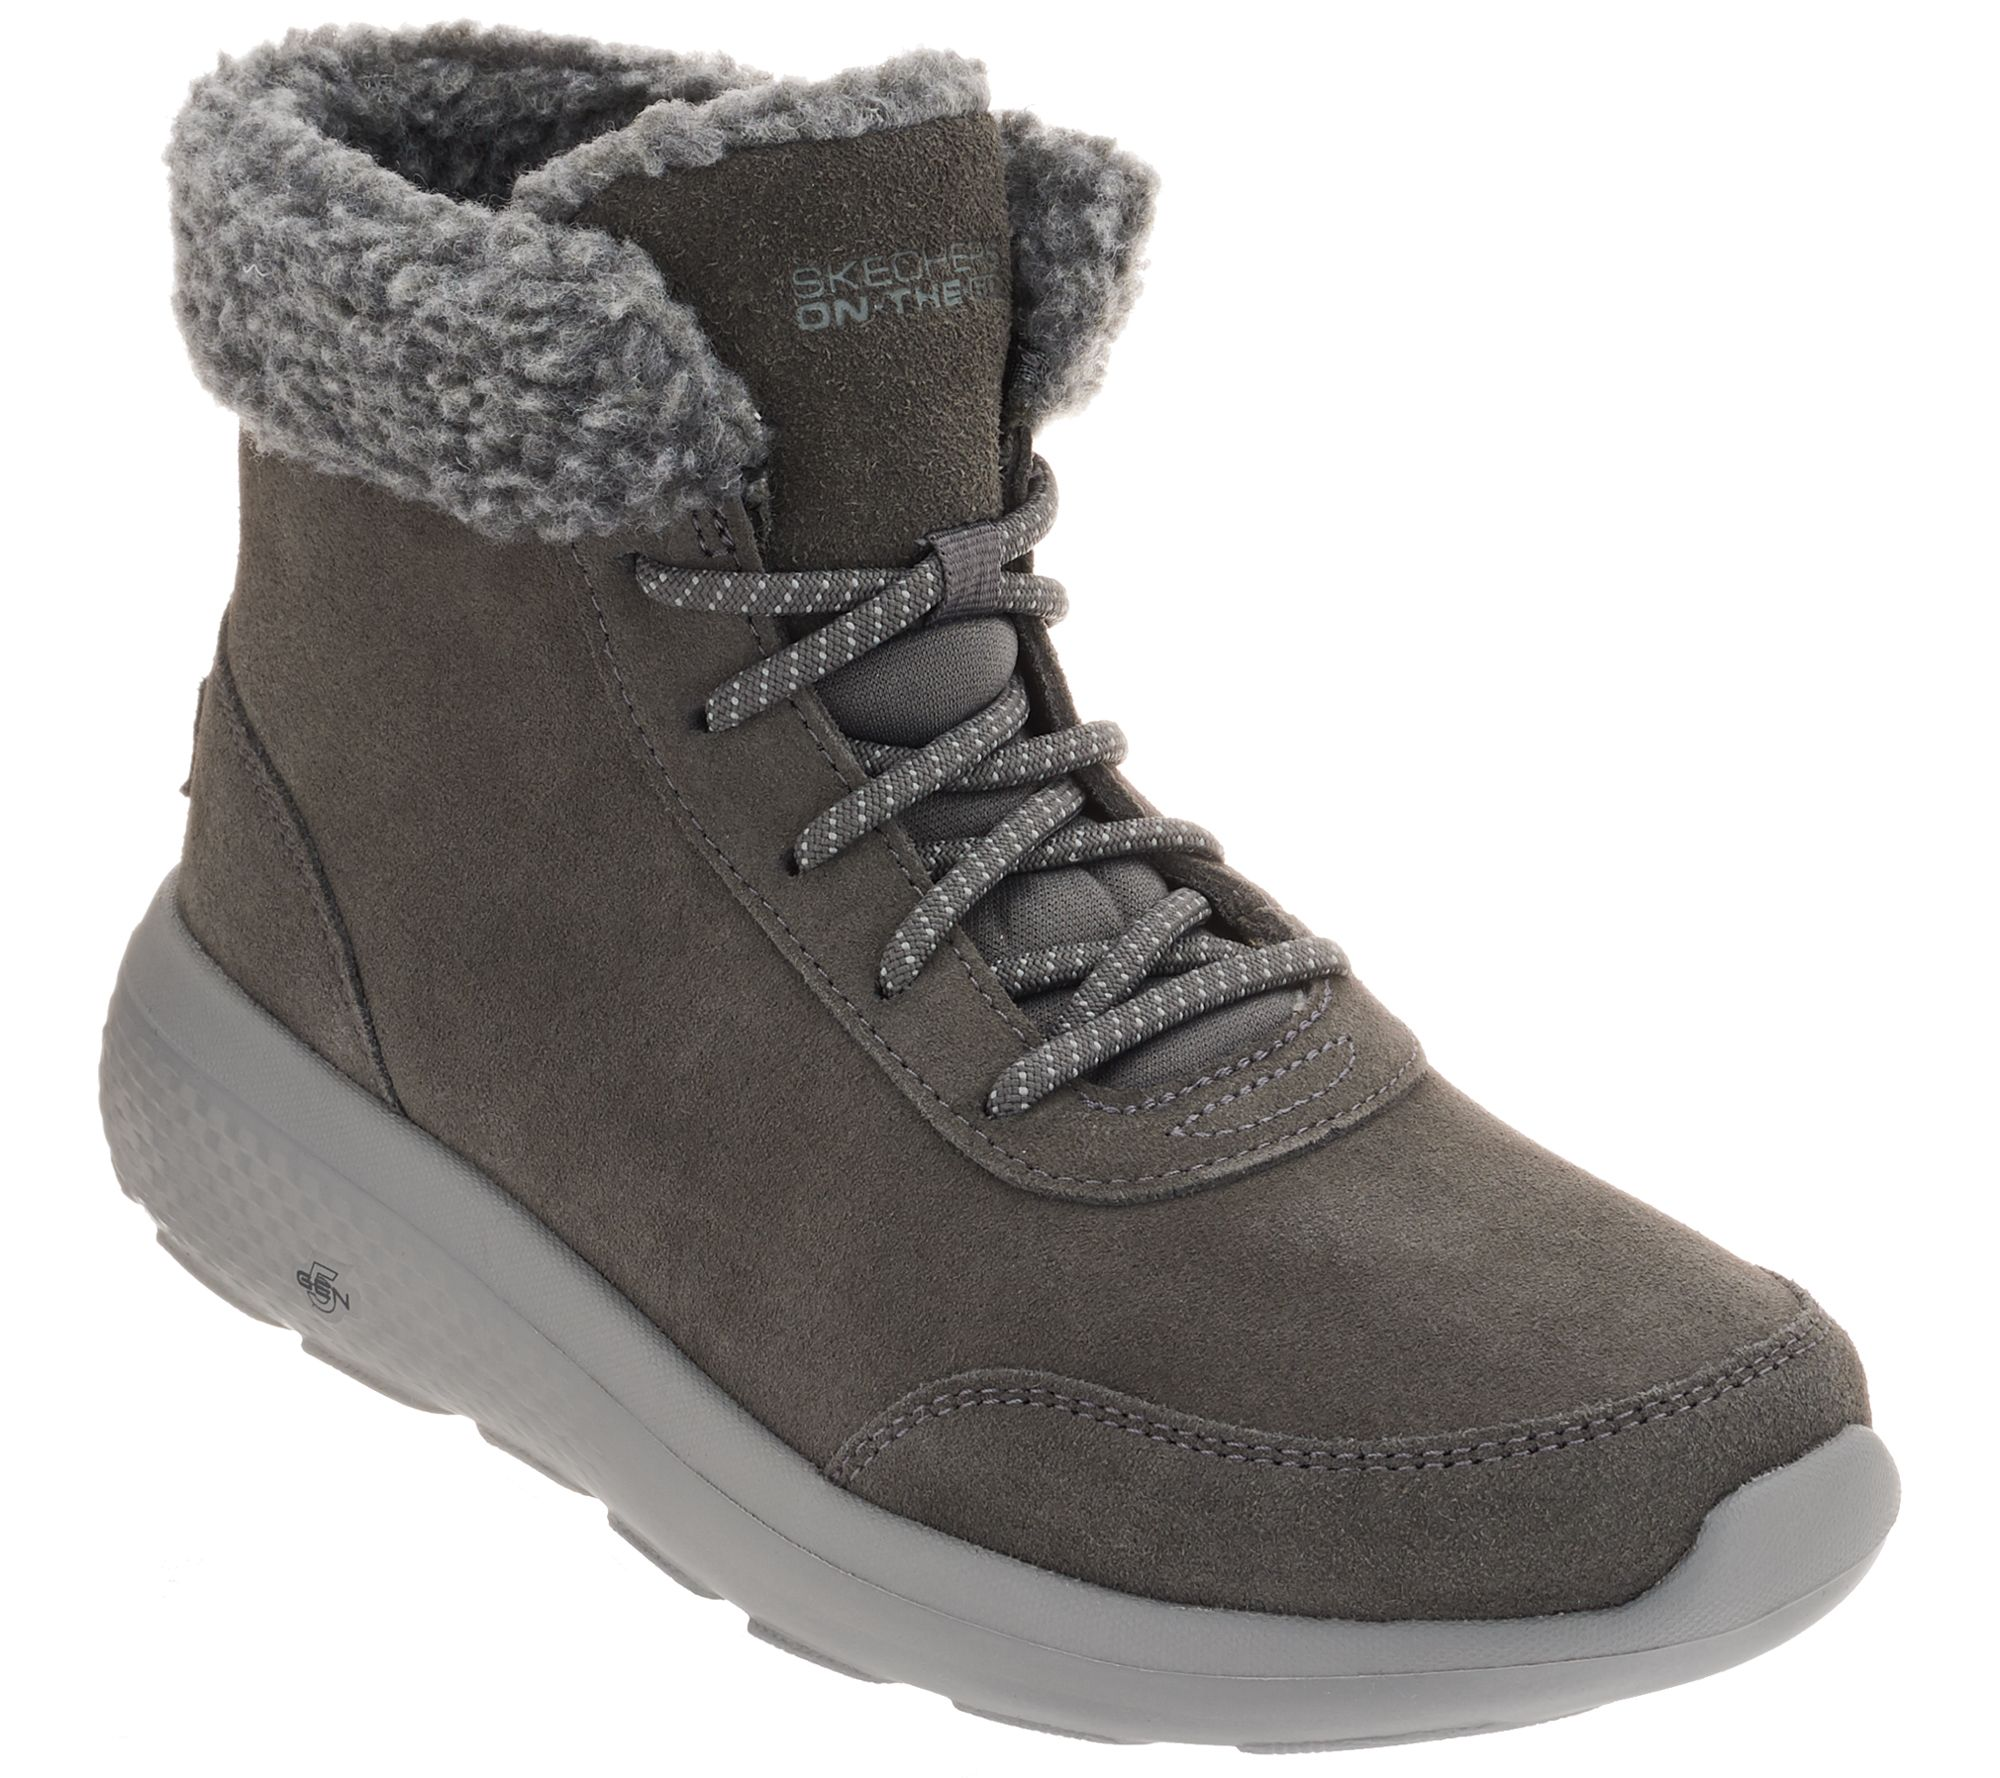 Skechers On the GO Lace Up Suede Boots City 2 Frostie —